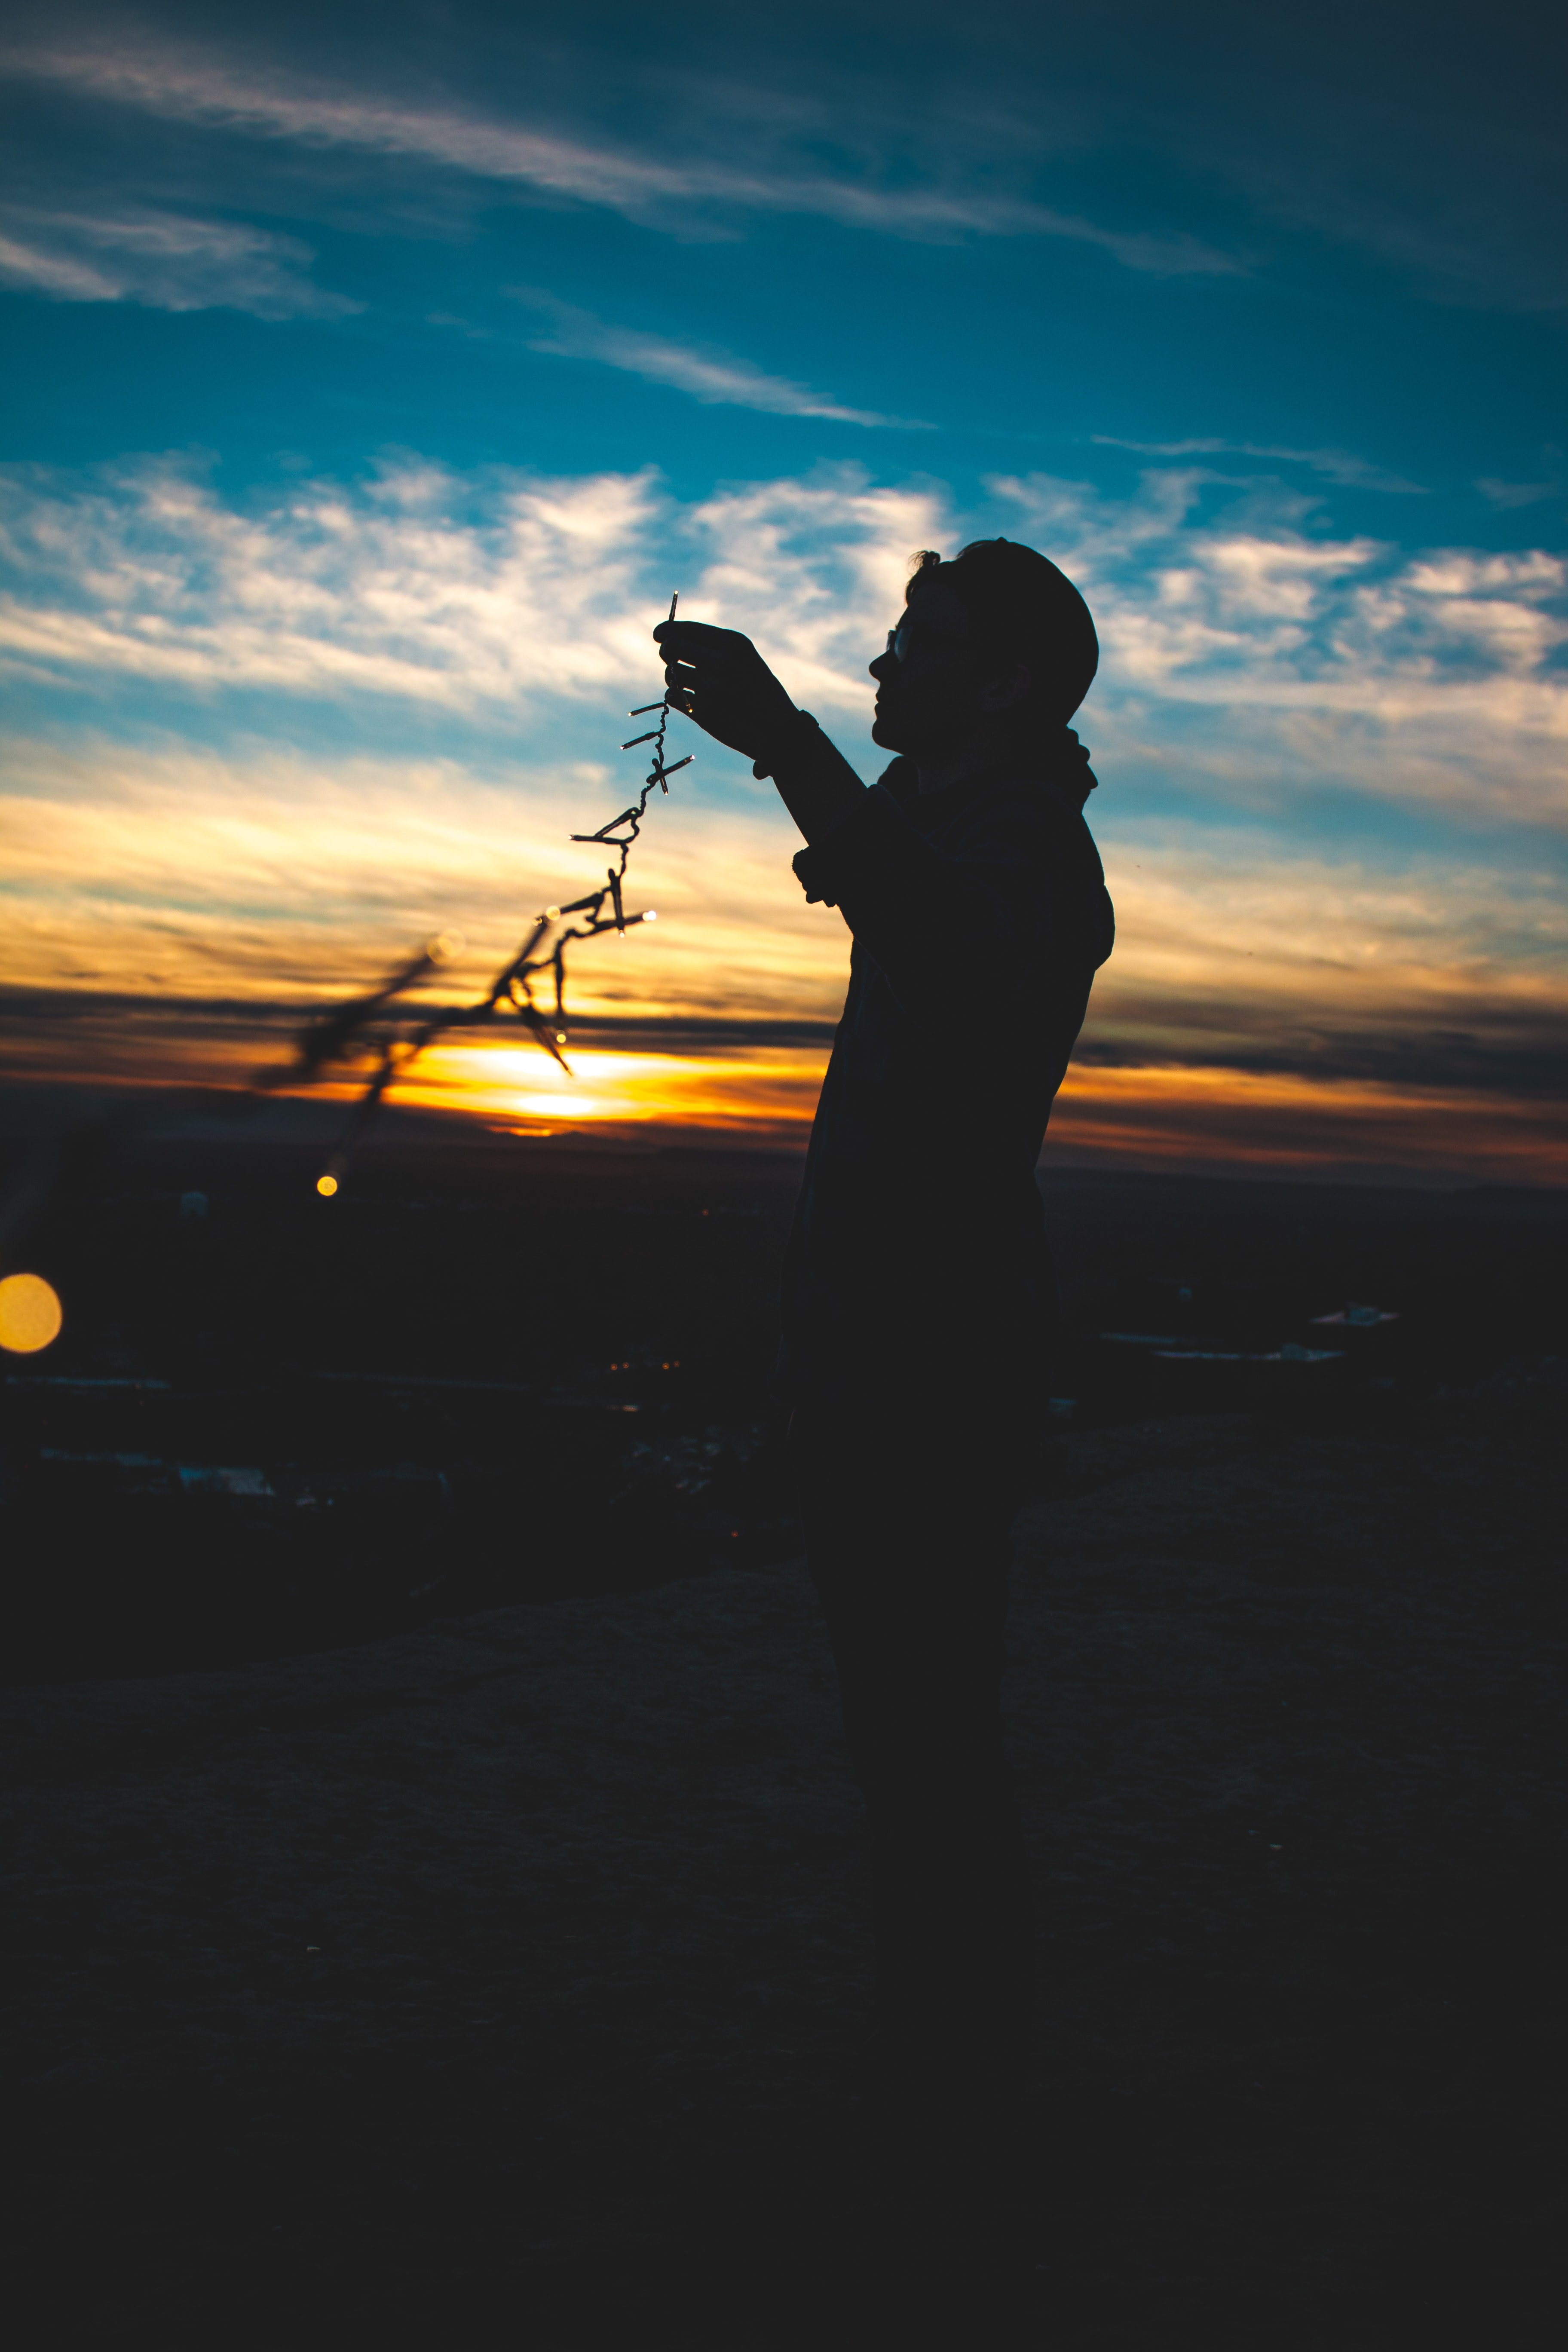 Silhouette of man with sunglasses holding fairy lights at sunrise